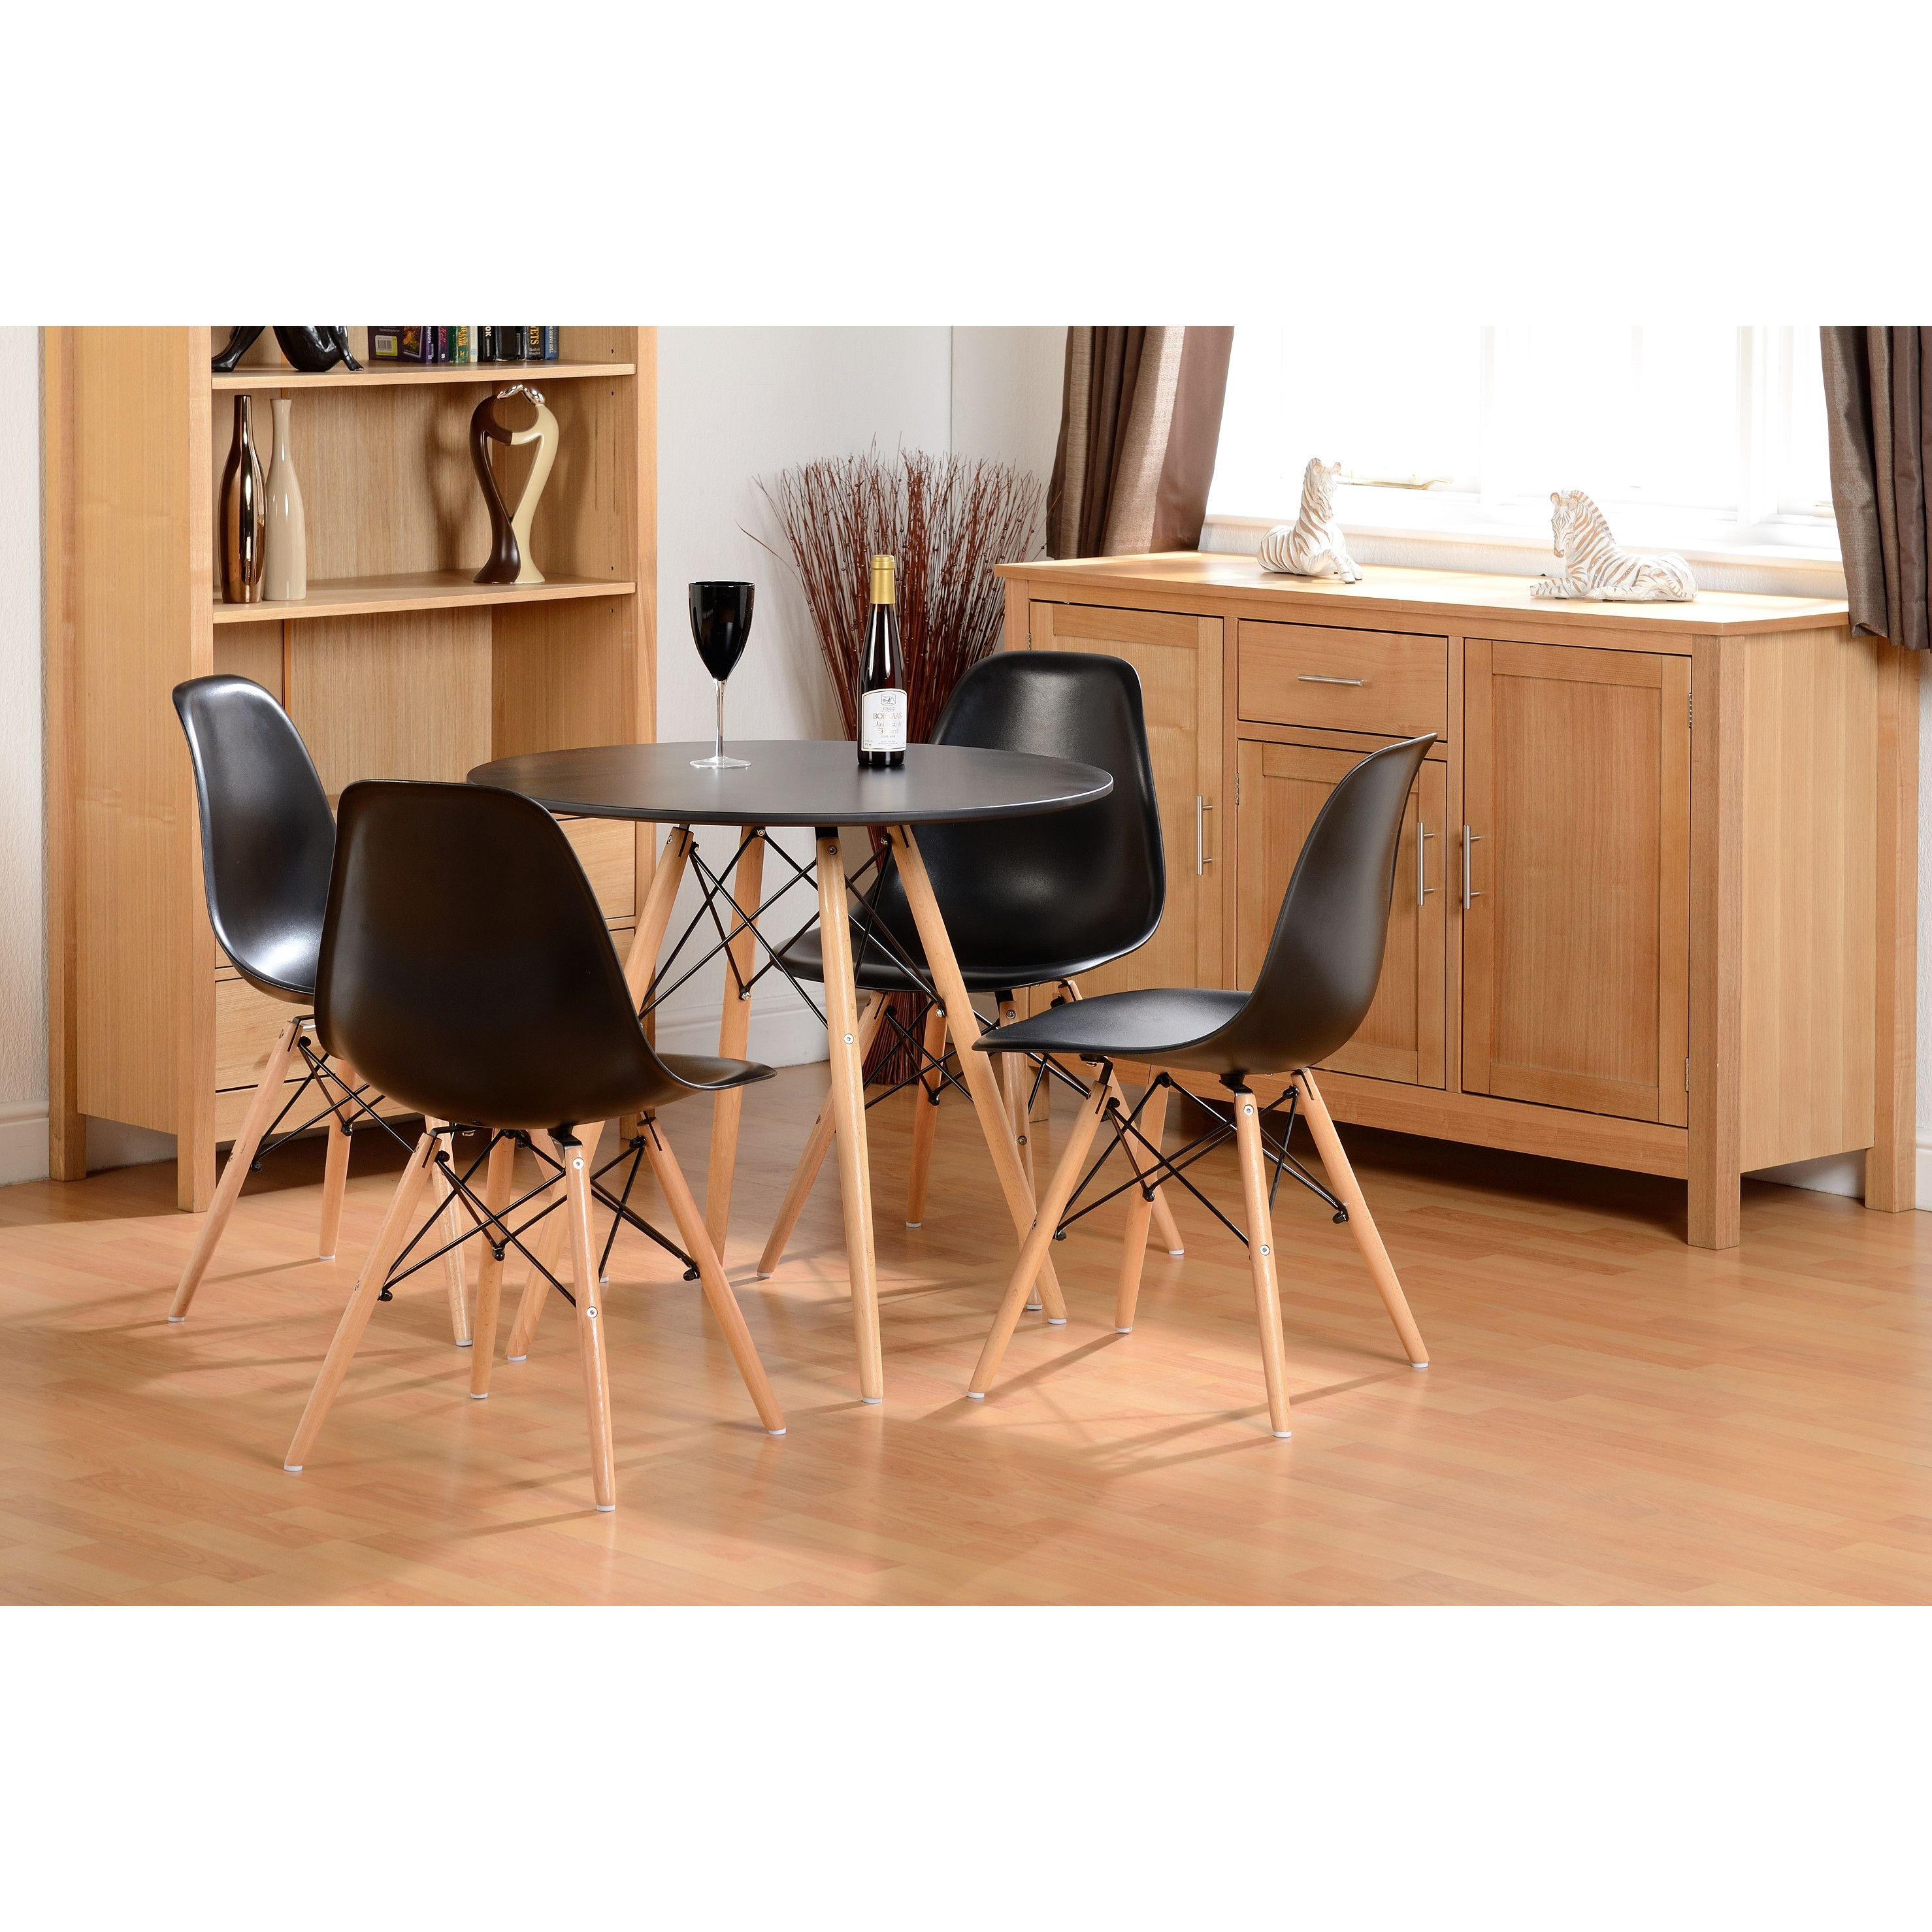 find the perfect dining table sets for you online at wayfair